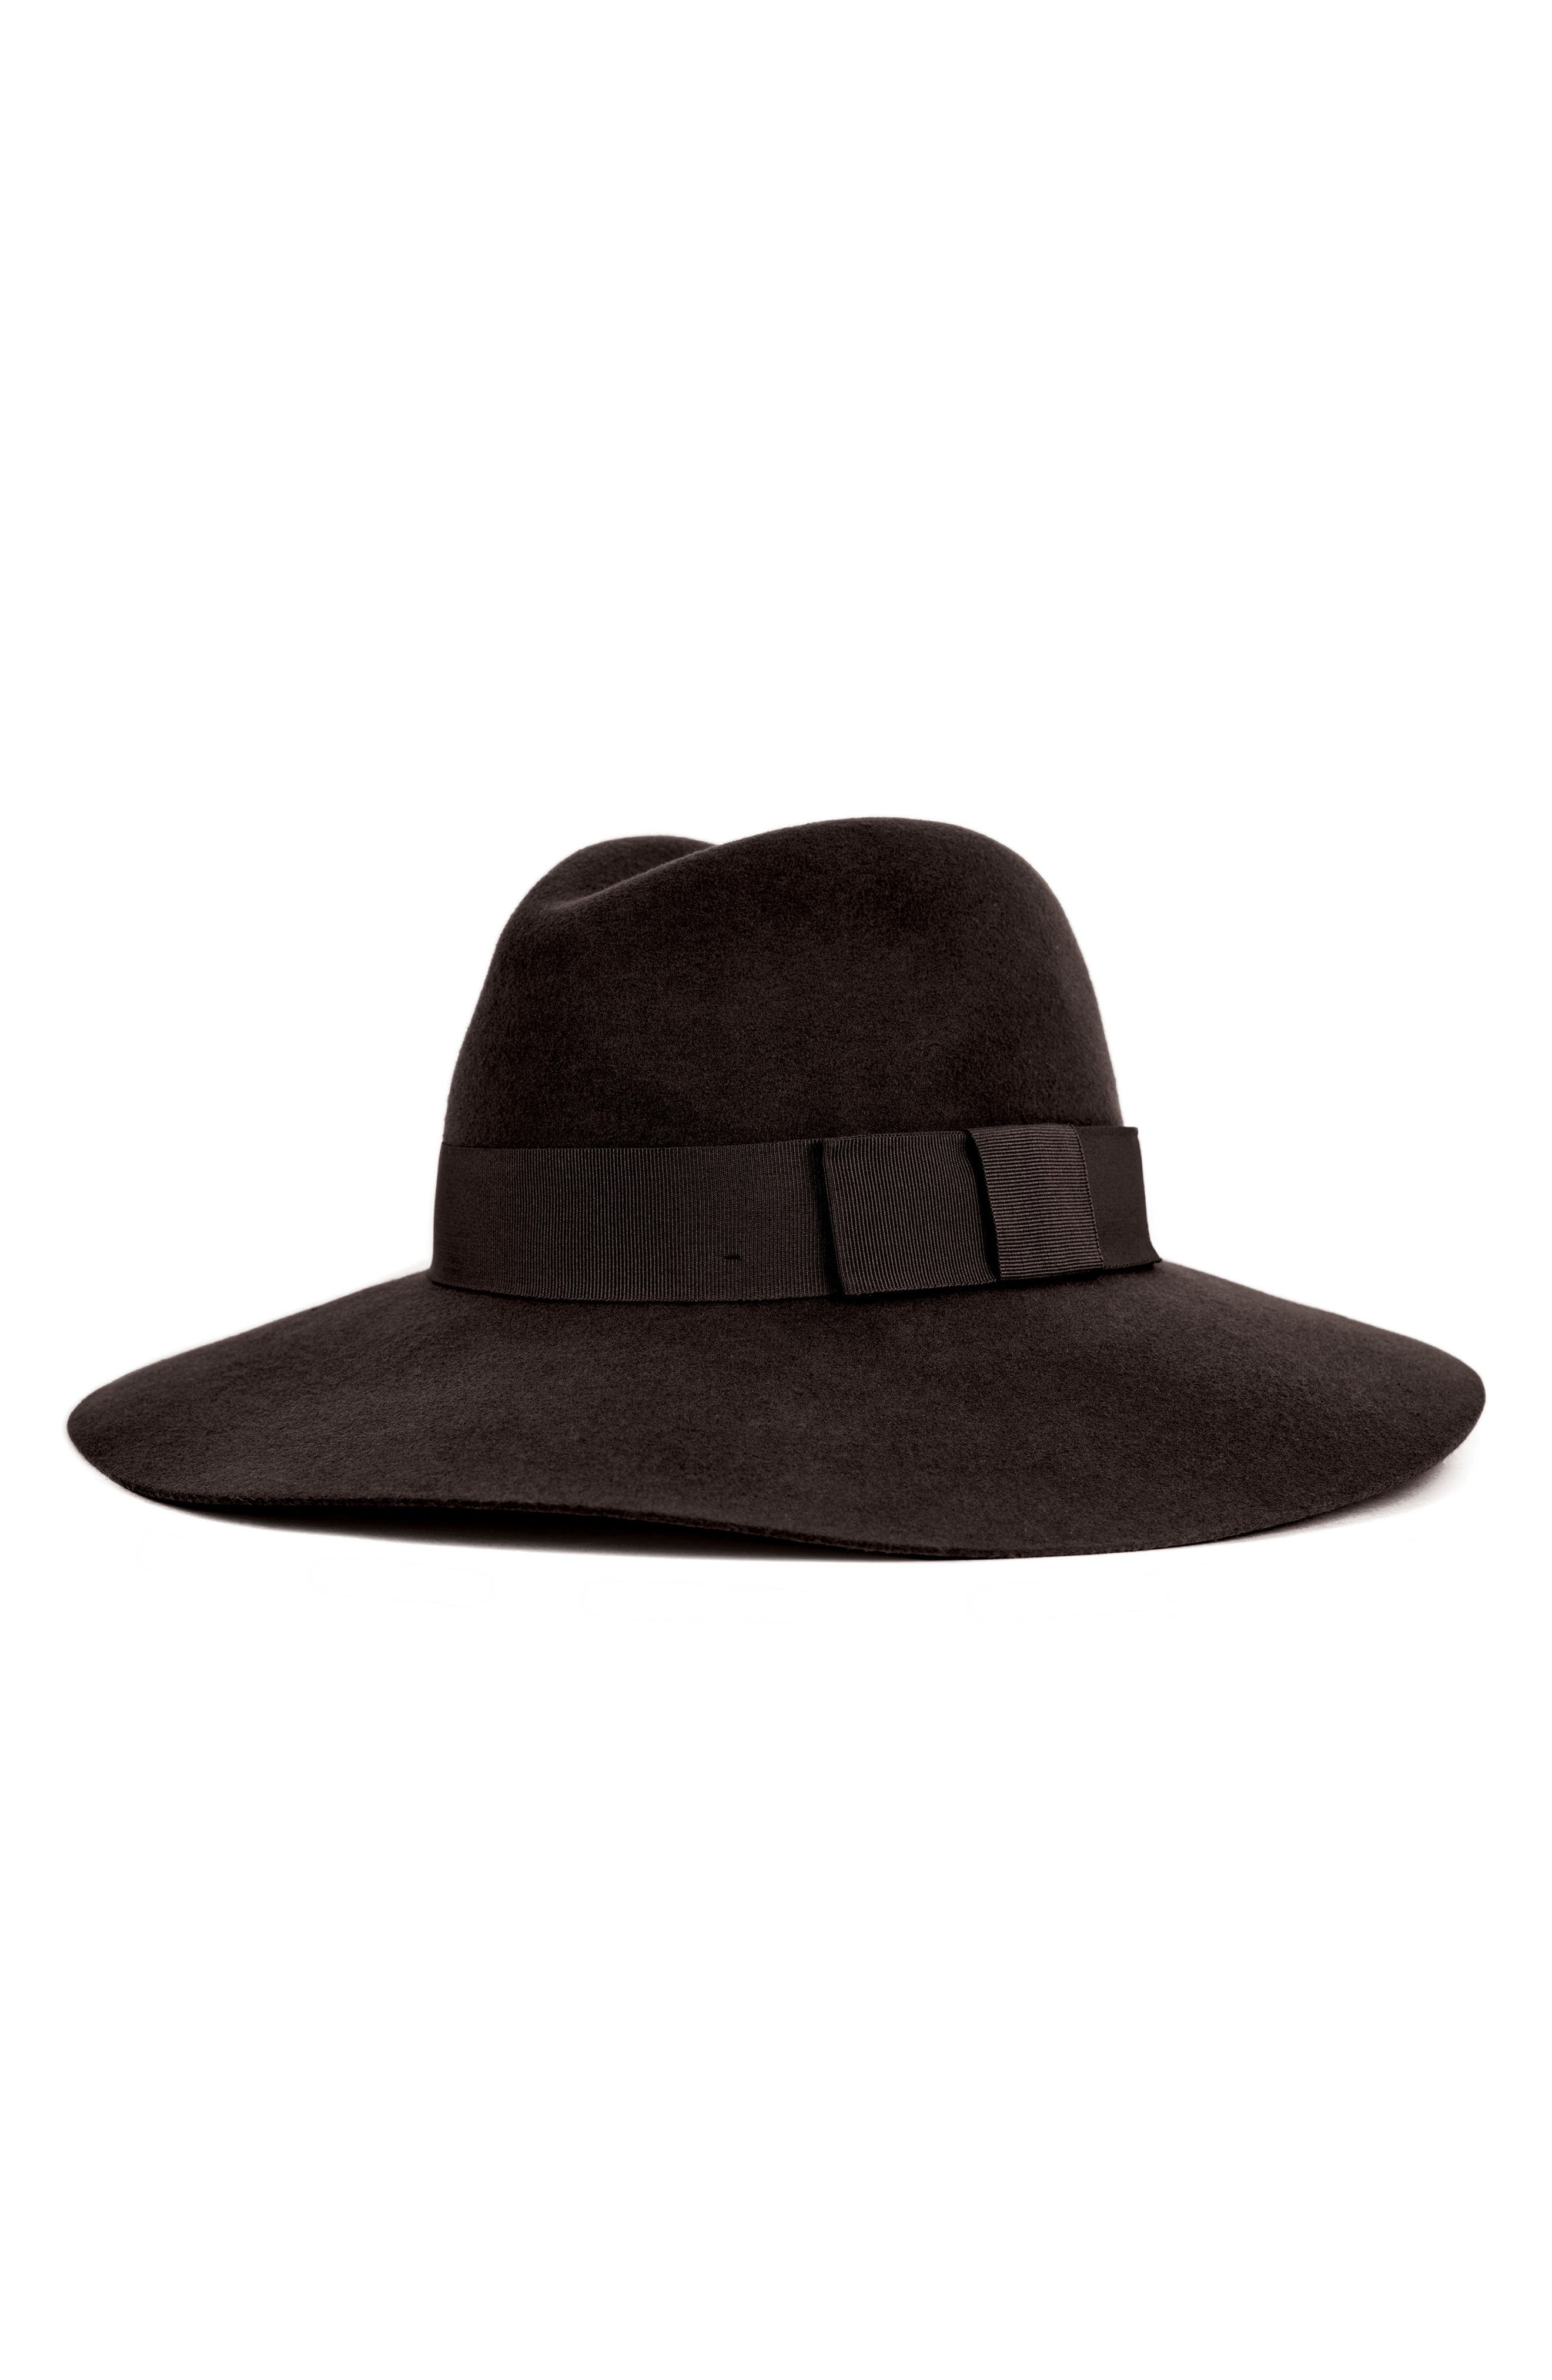 Alternate Image 1 Selected - Brixton 'Piper' Floppy Wool Hat